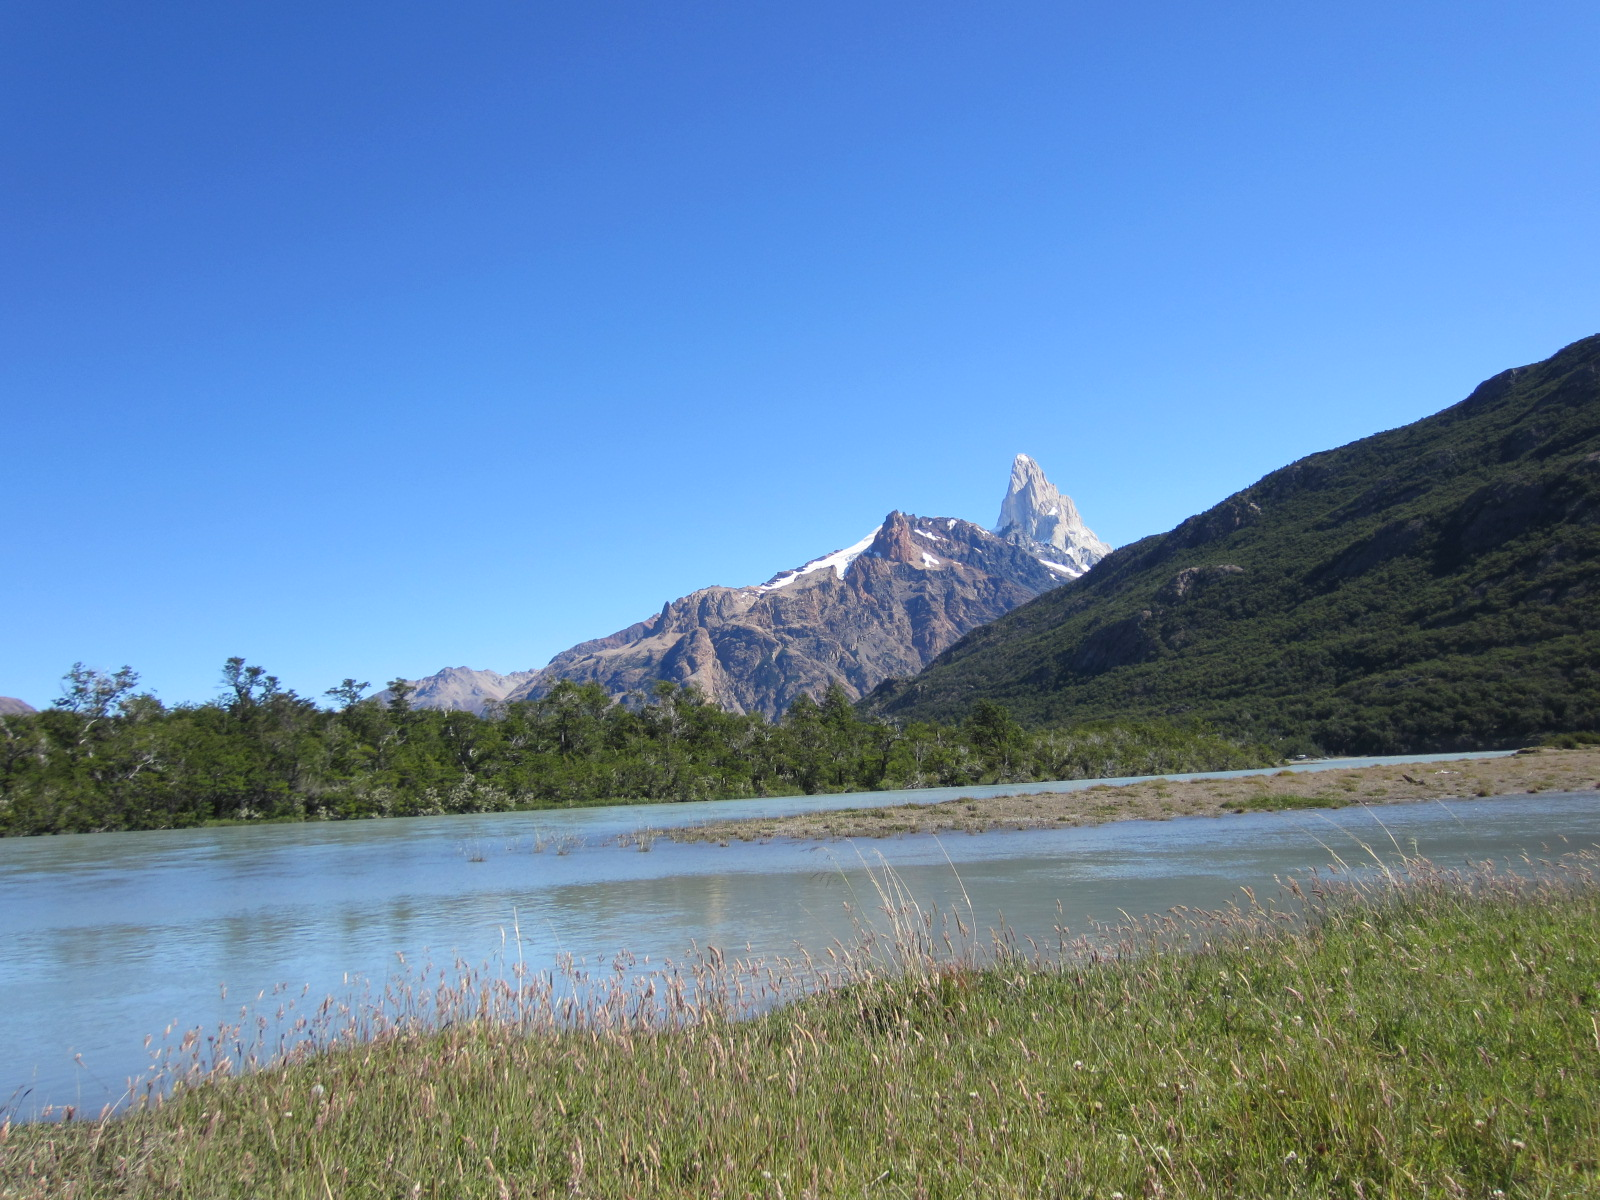 in the foreground Rio de las Vueltas with Mt Fitz Roy in the distance